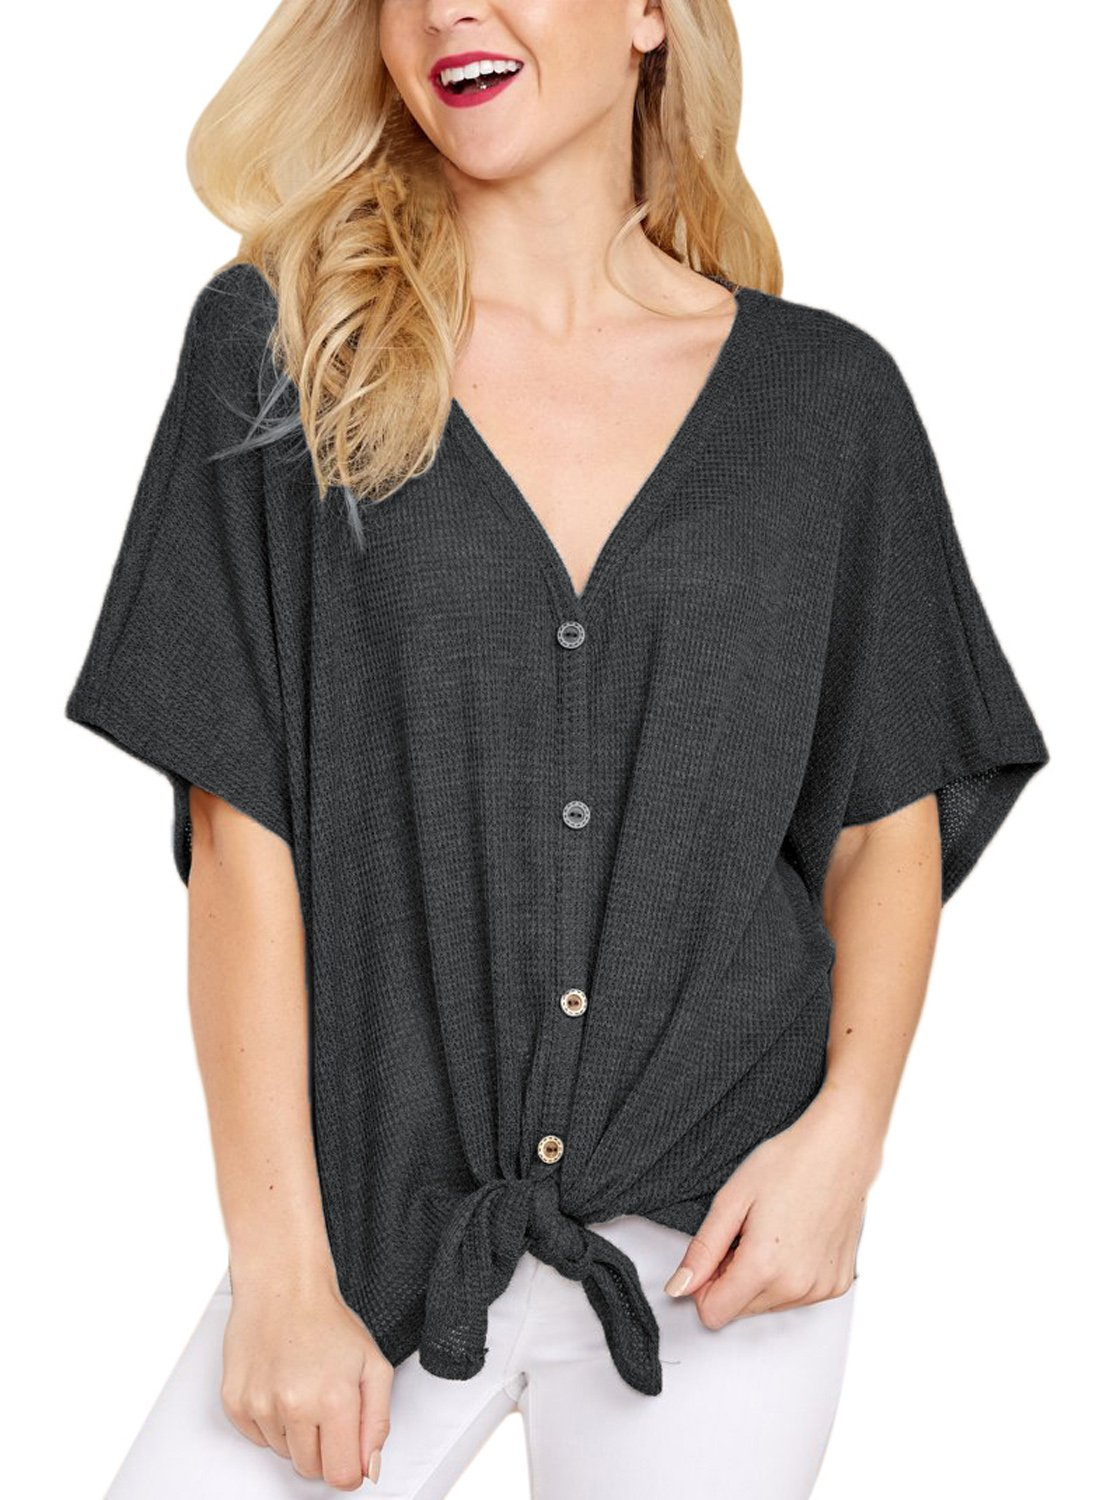 Lovezesent Women's Plus Size Casual Loose Fit Knitted Tunic Blouse Sexy V Neck Front Tie Knot Button Down Henley Shirts Tops Black XL